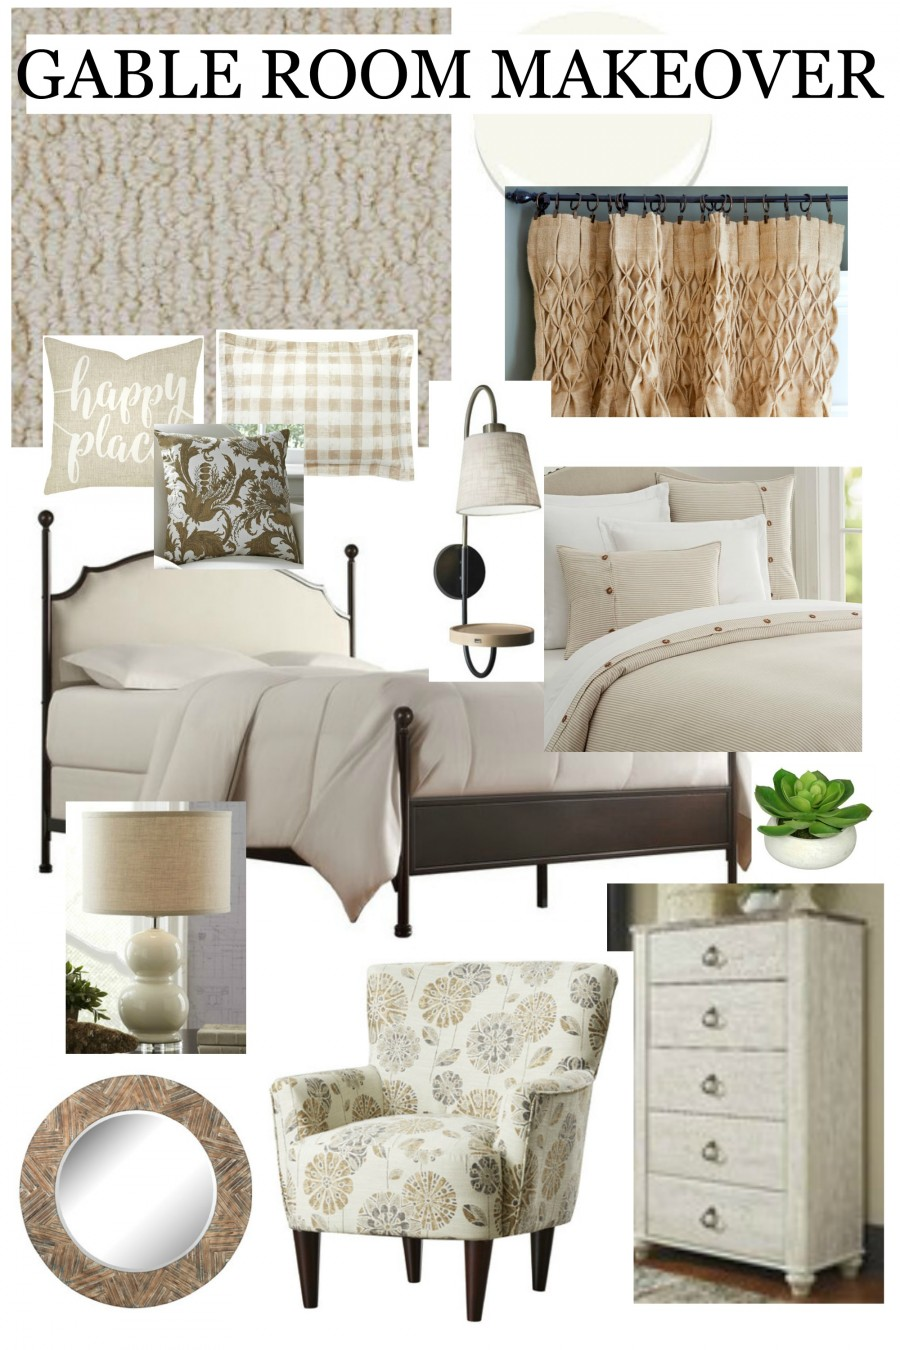 Plans and progress for a gable room makeover and - Decorating tips and tricks ...